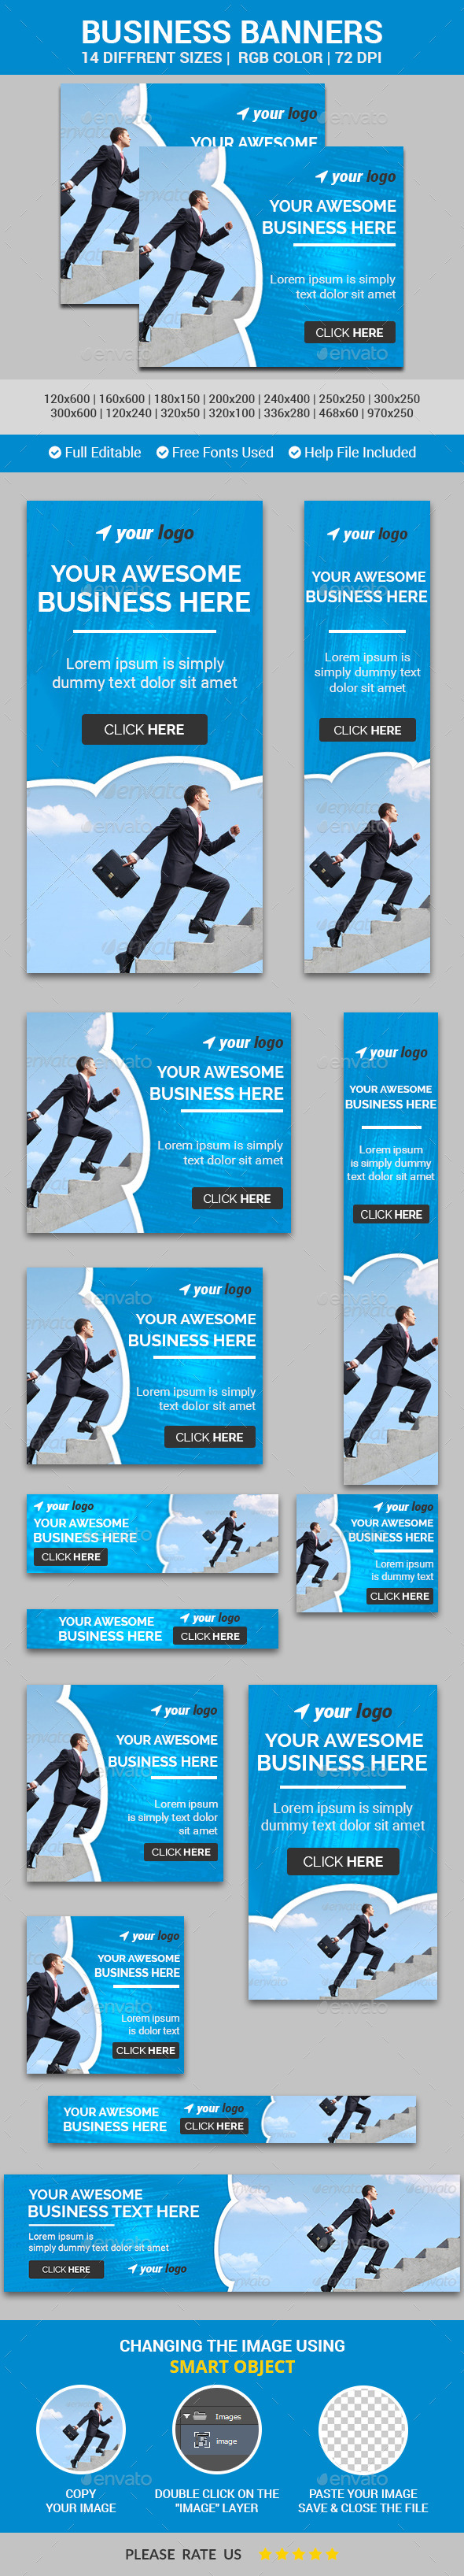 Business Banners v8